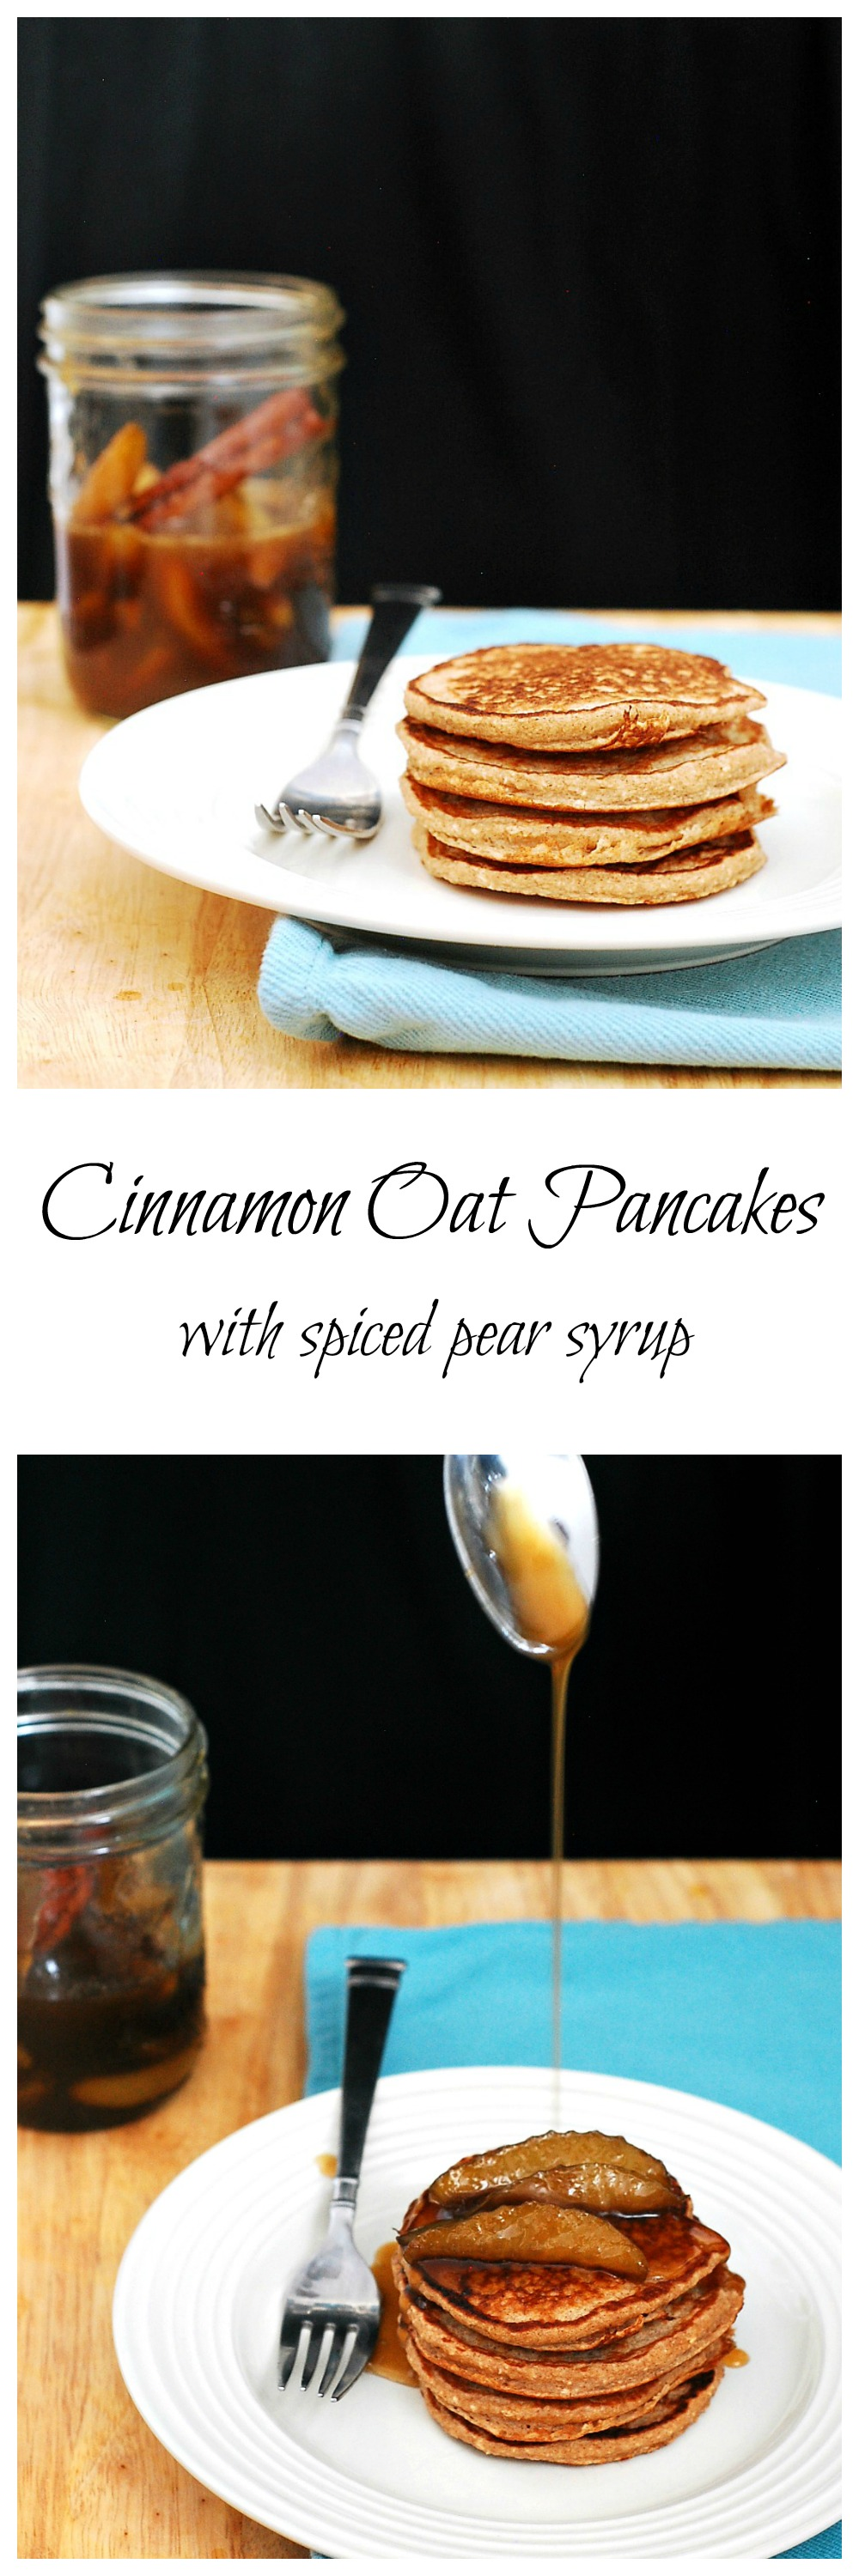 Make your brunch heart-healthy with these cinnamon oat pancakes, made with rolled oats and Greek yogurt, then drizzle on spiced pear-infused syrup. #BrunchWeek theredheadbaker.com